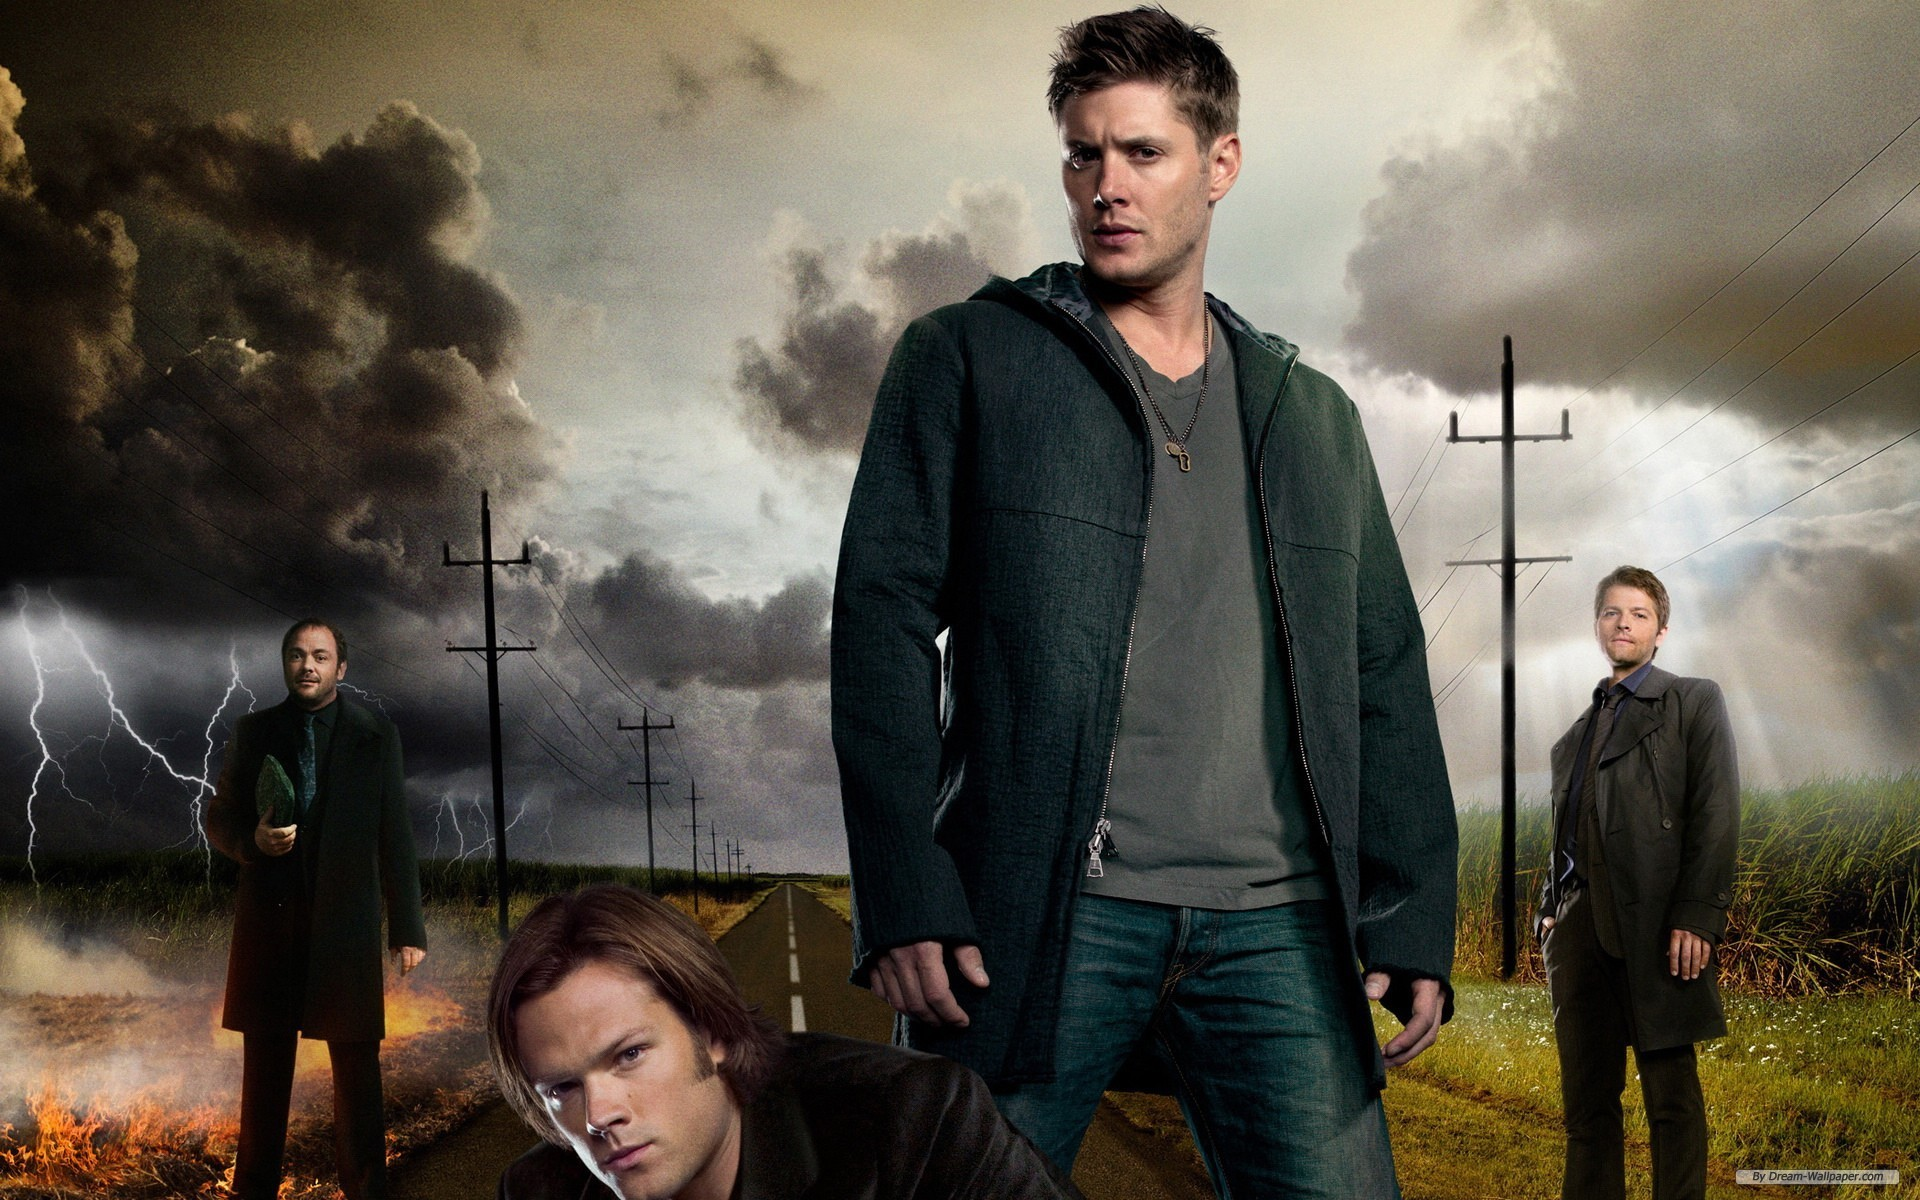 Supernatural screensavers and wallpaper dean 73 images 1920x1080 supernatural wallpapers pictures images download voltagebd Image collections